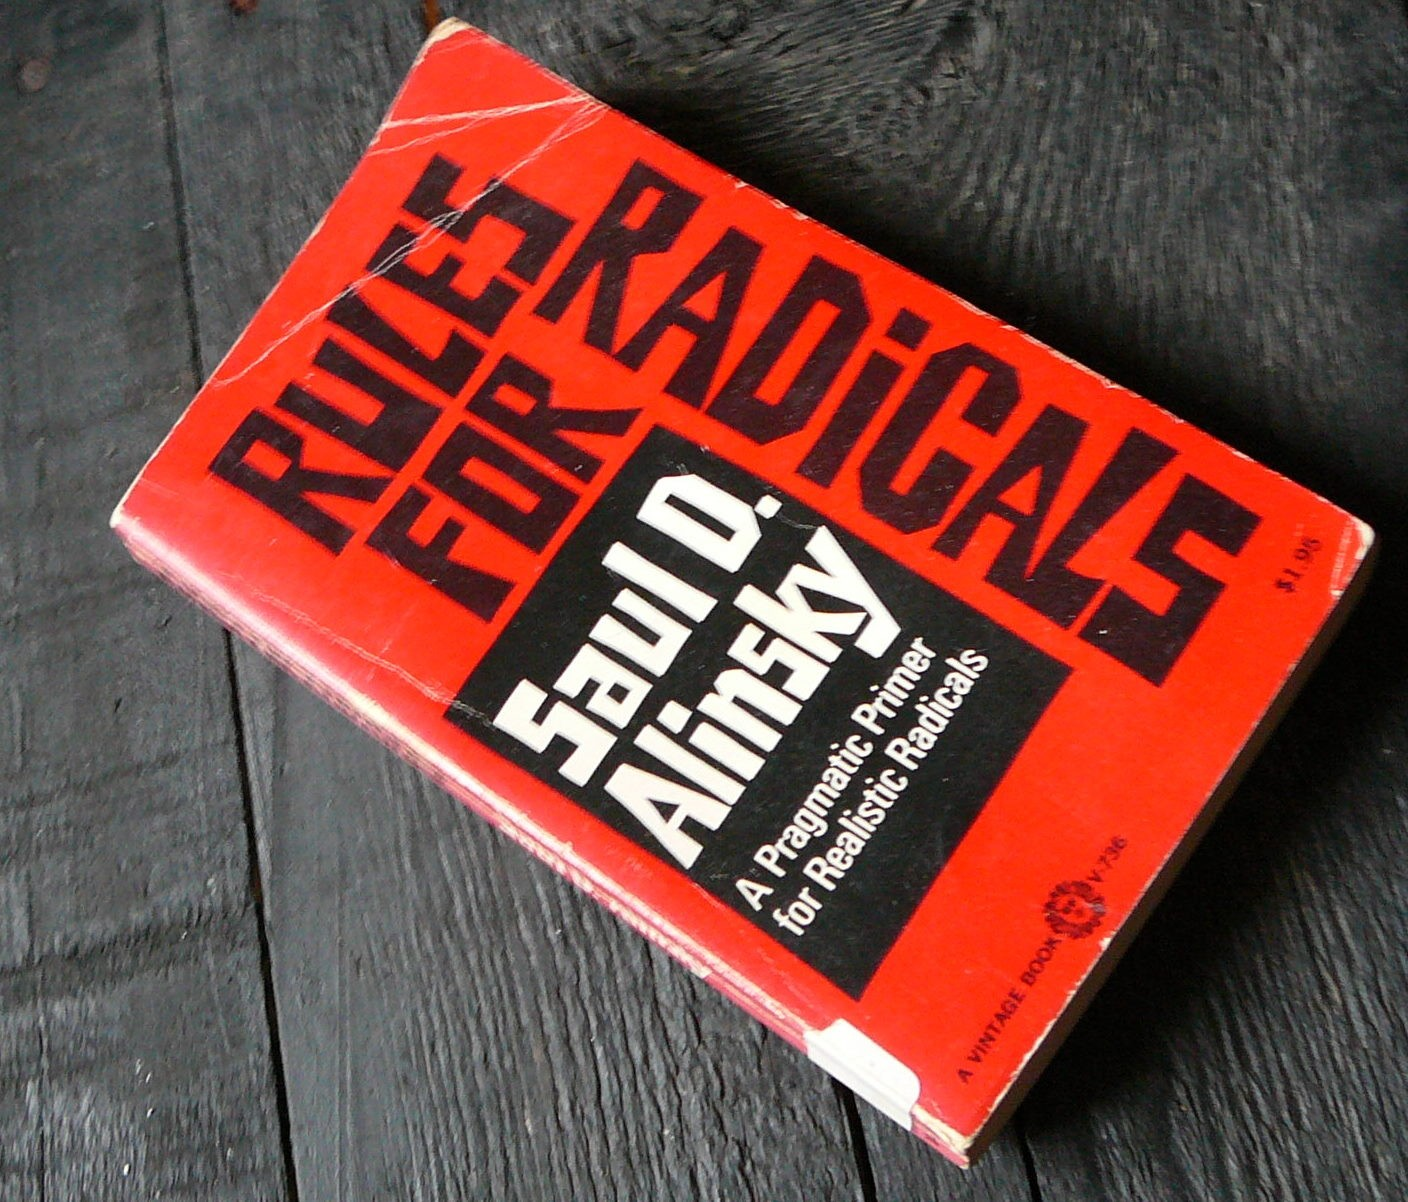 RULES FOR RADICALS PDF FREE DOWNLOAD